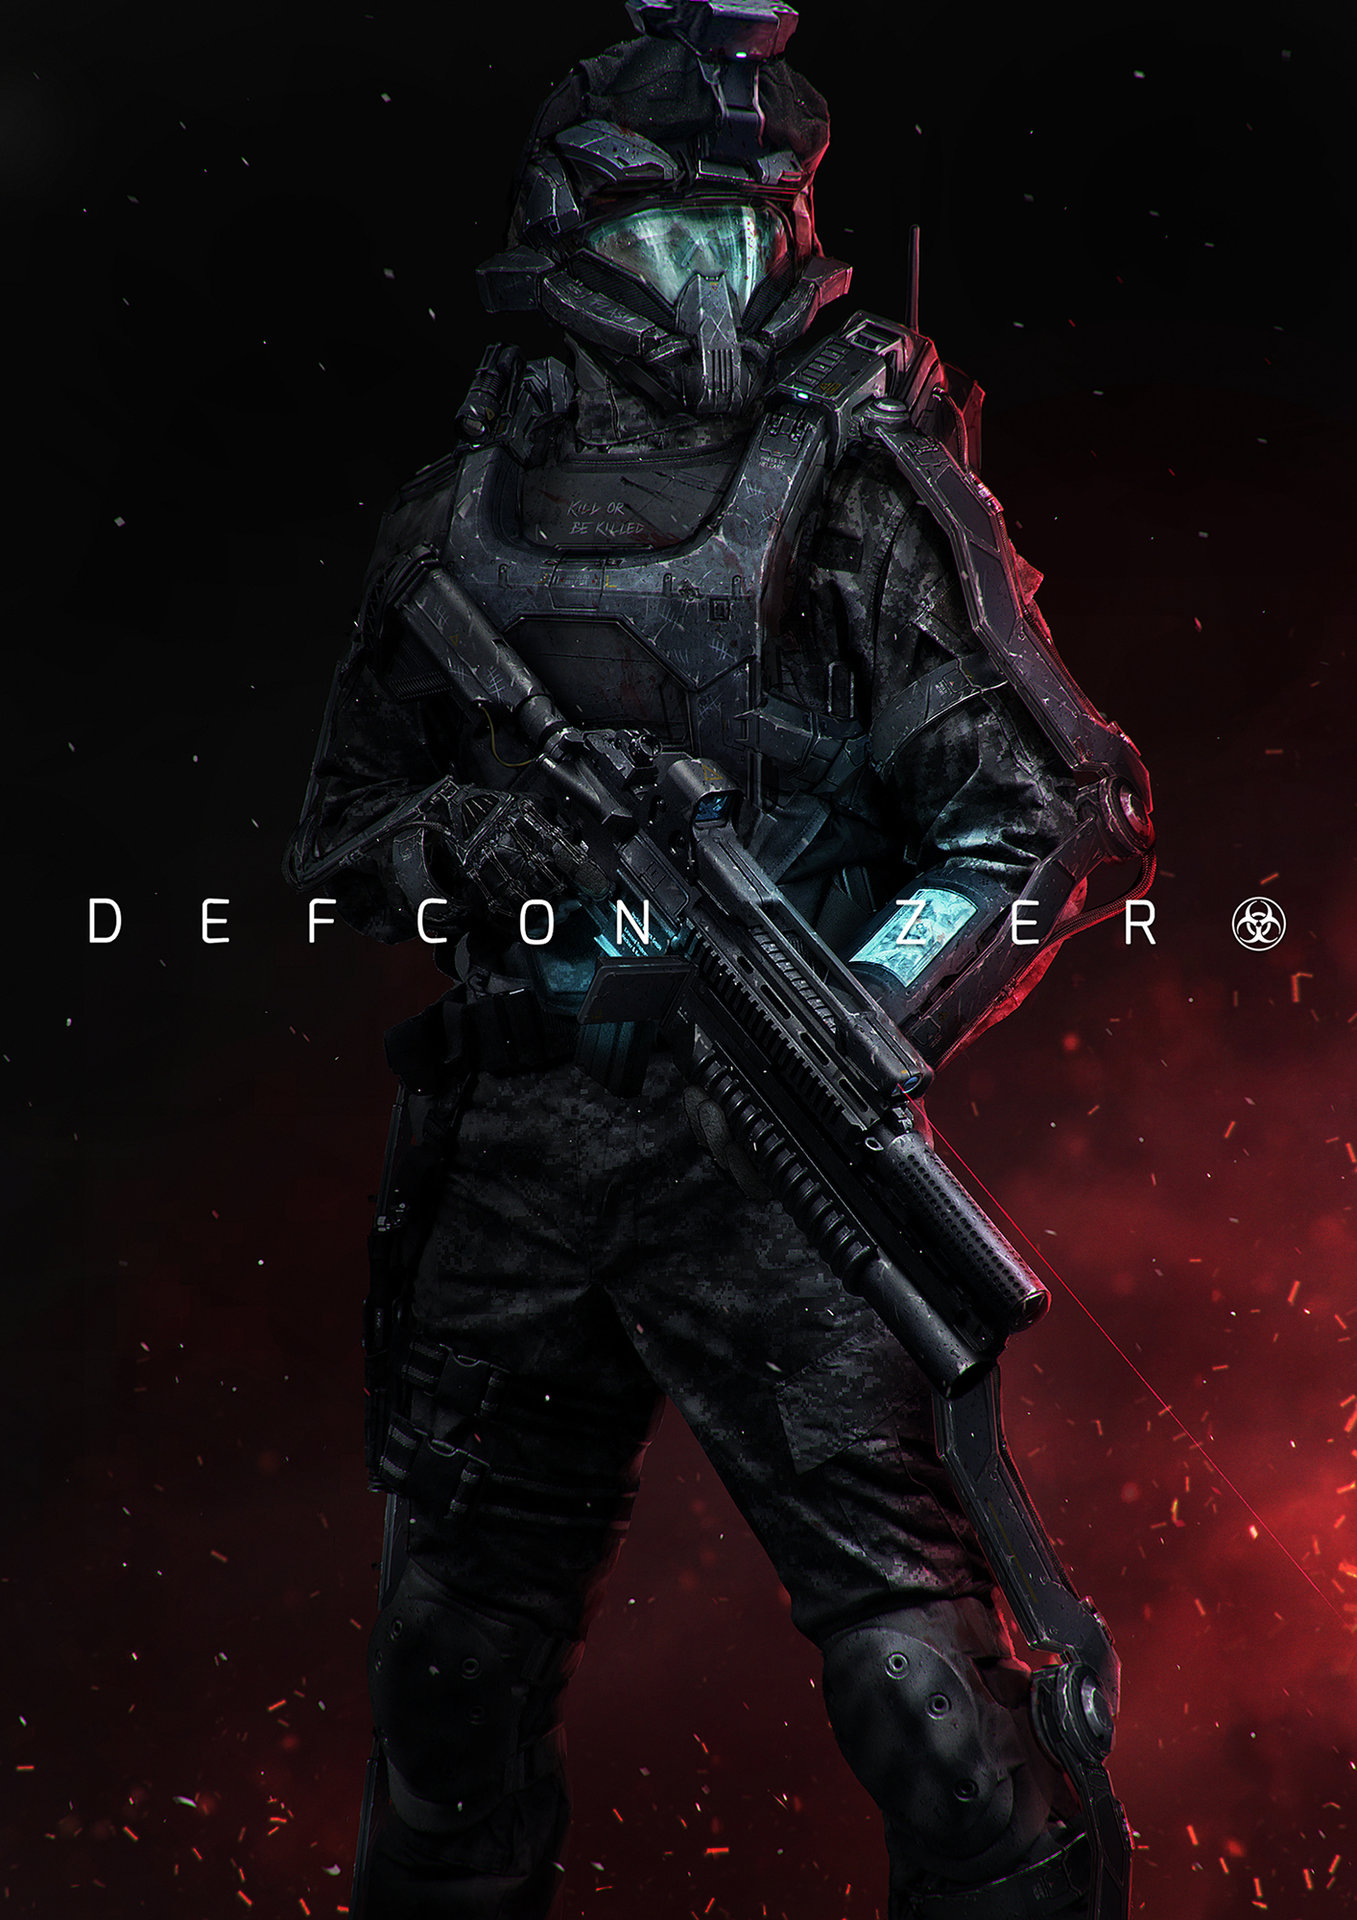 Johnson ting defcon full body 2